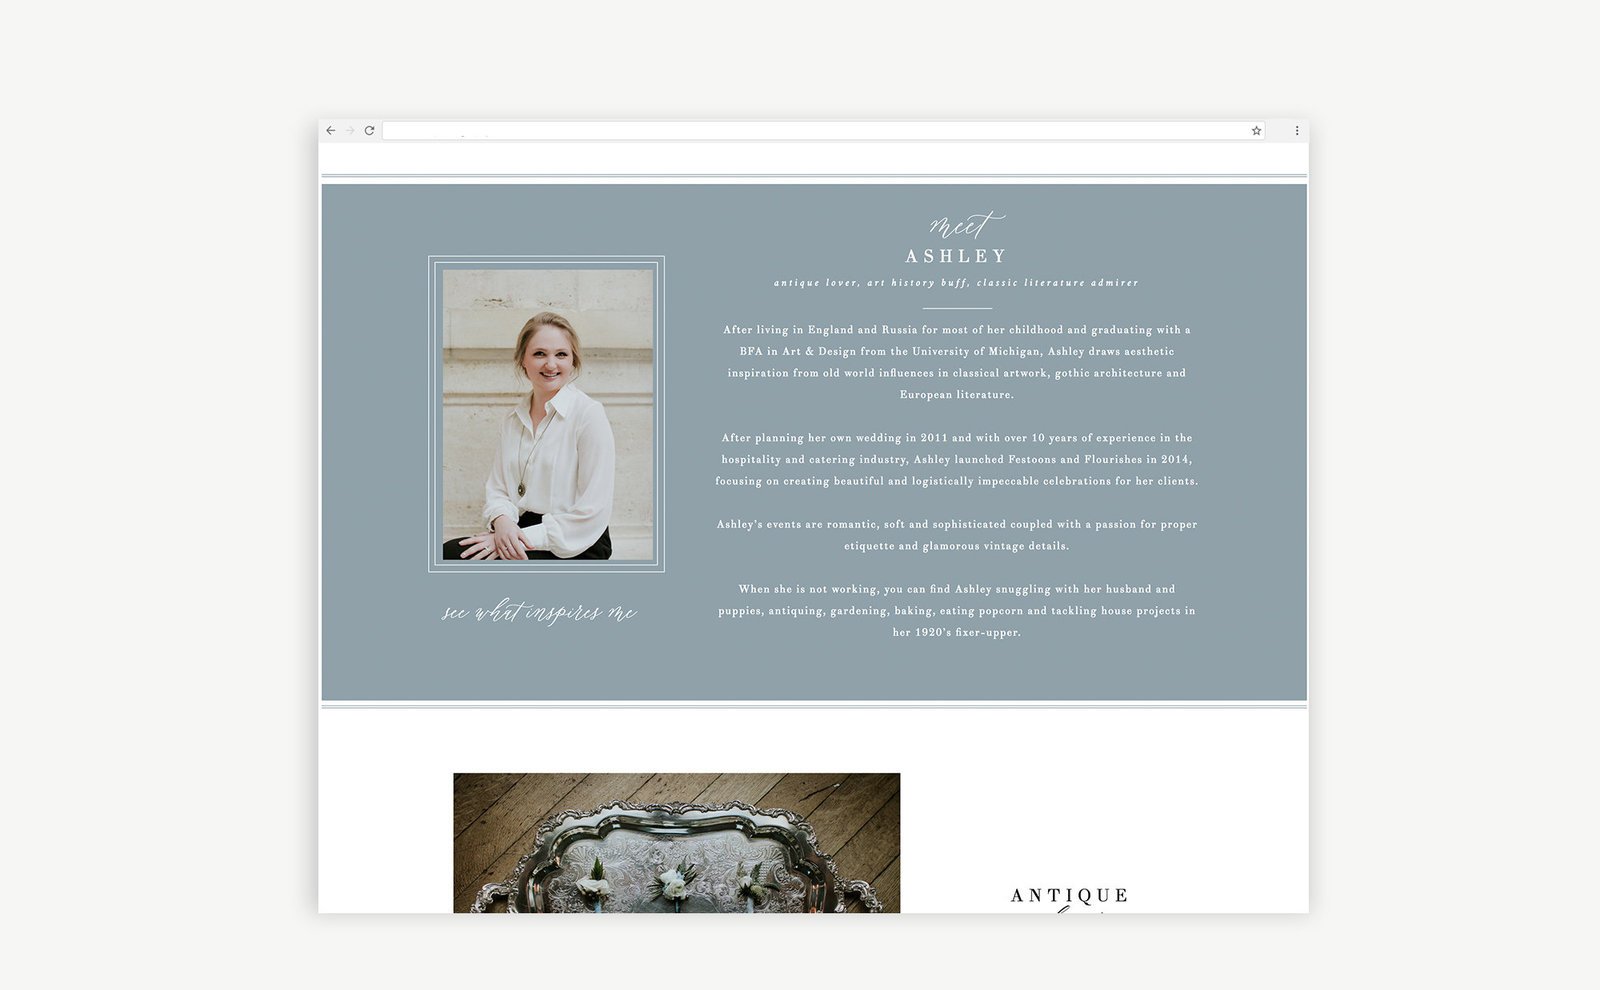 showit-website-branding-for-wedding-businesses-festoons-02